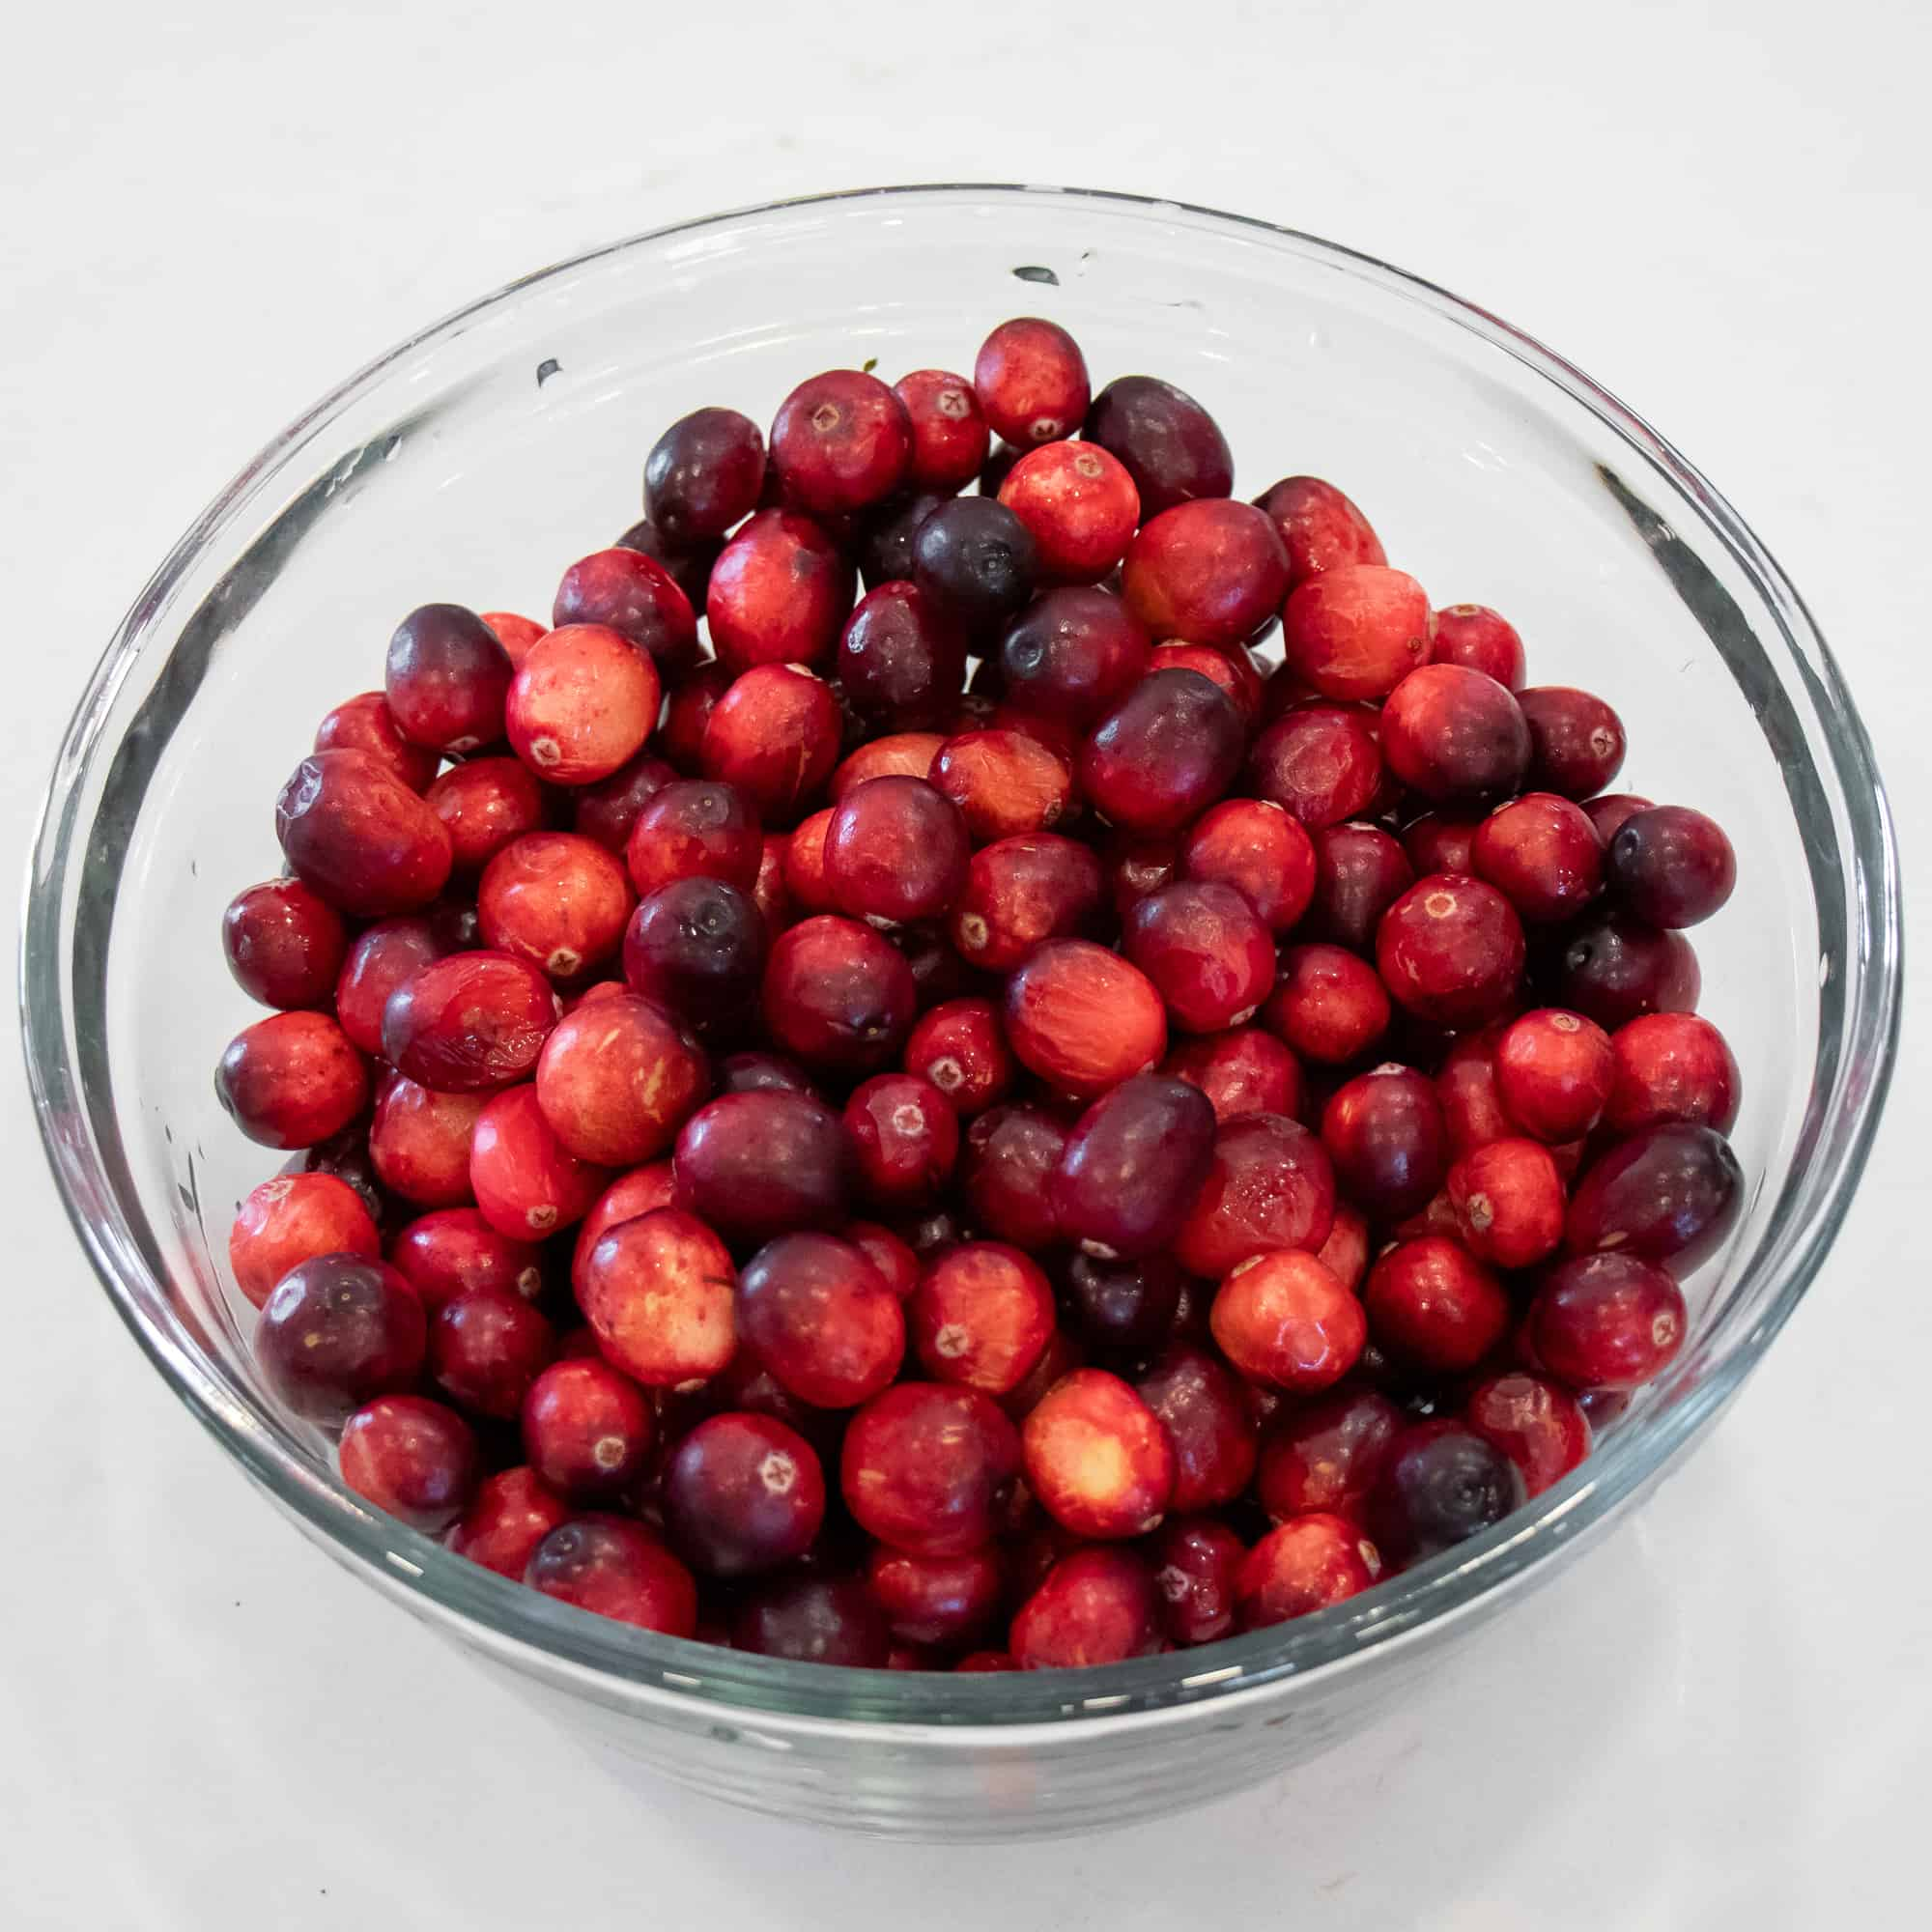 Fresh cranberries make the best sauce. Rinse them ahead